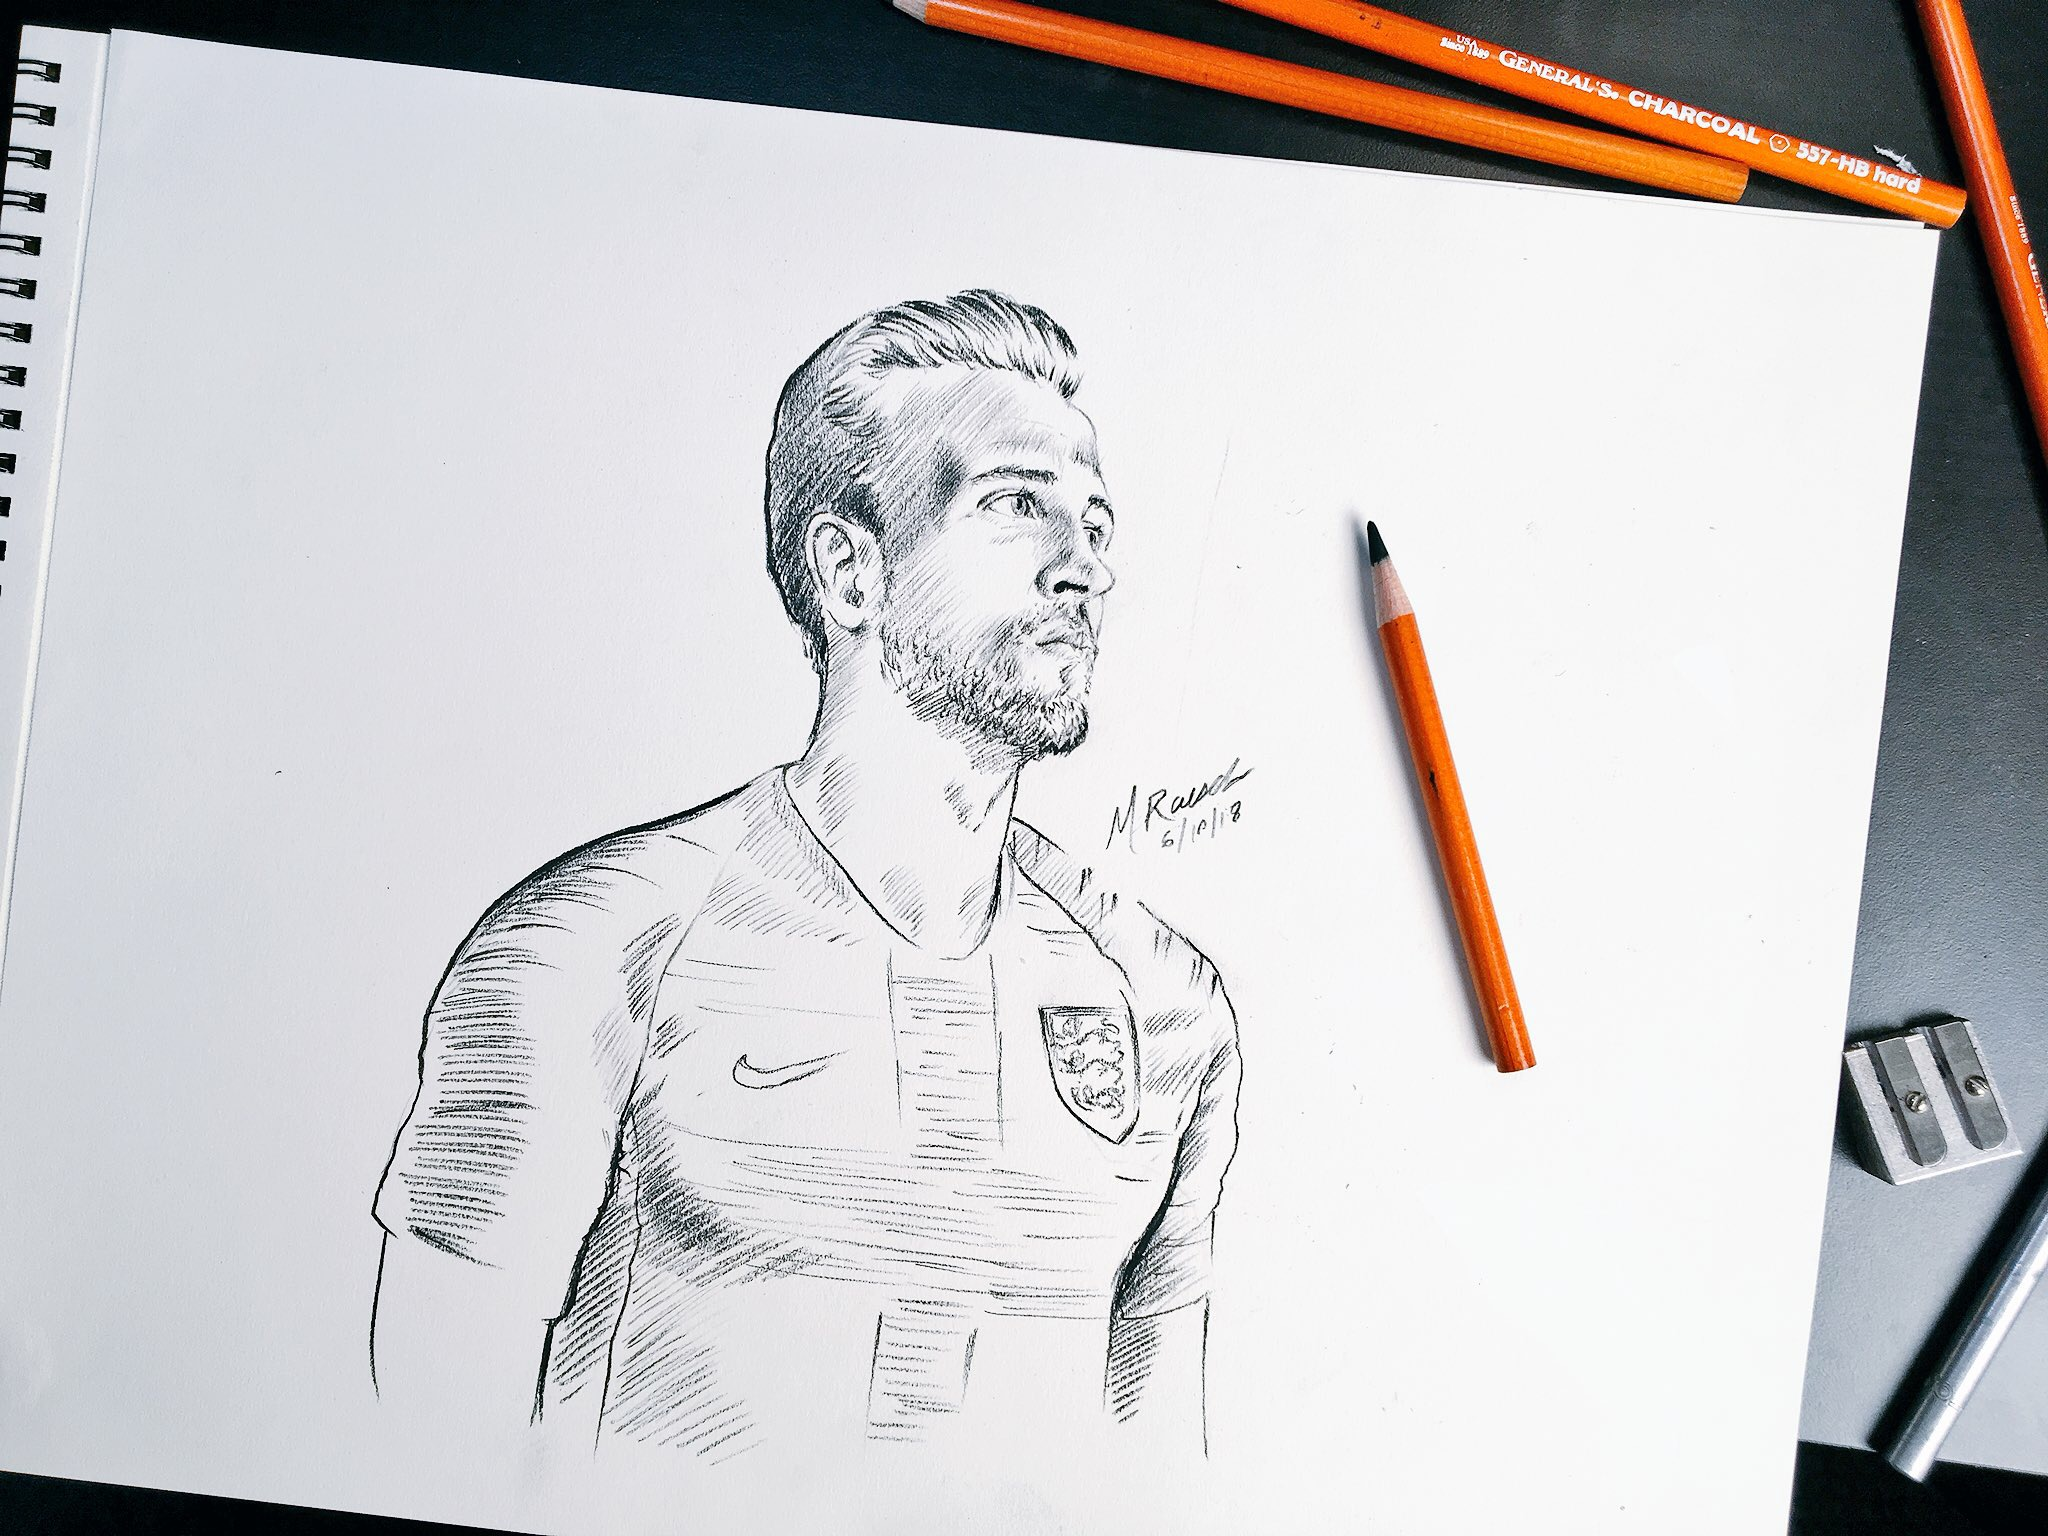 FootballAtlas_Sketch-6.jpg